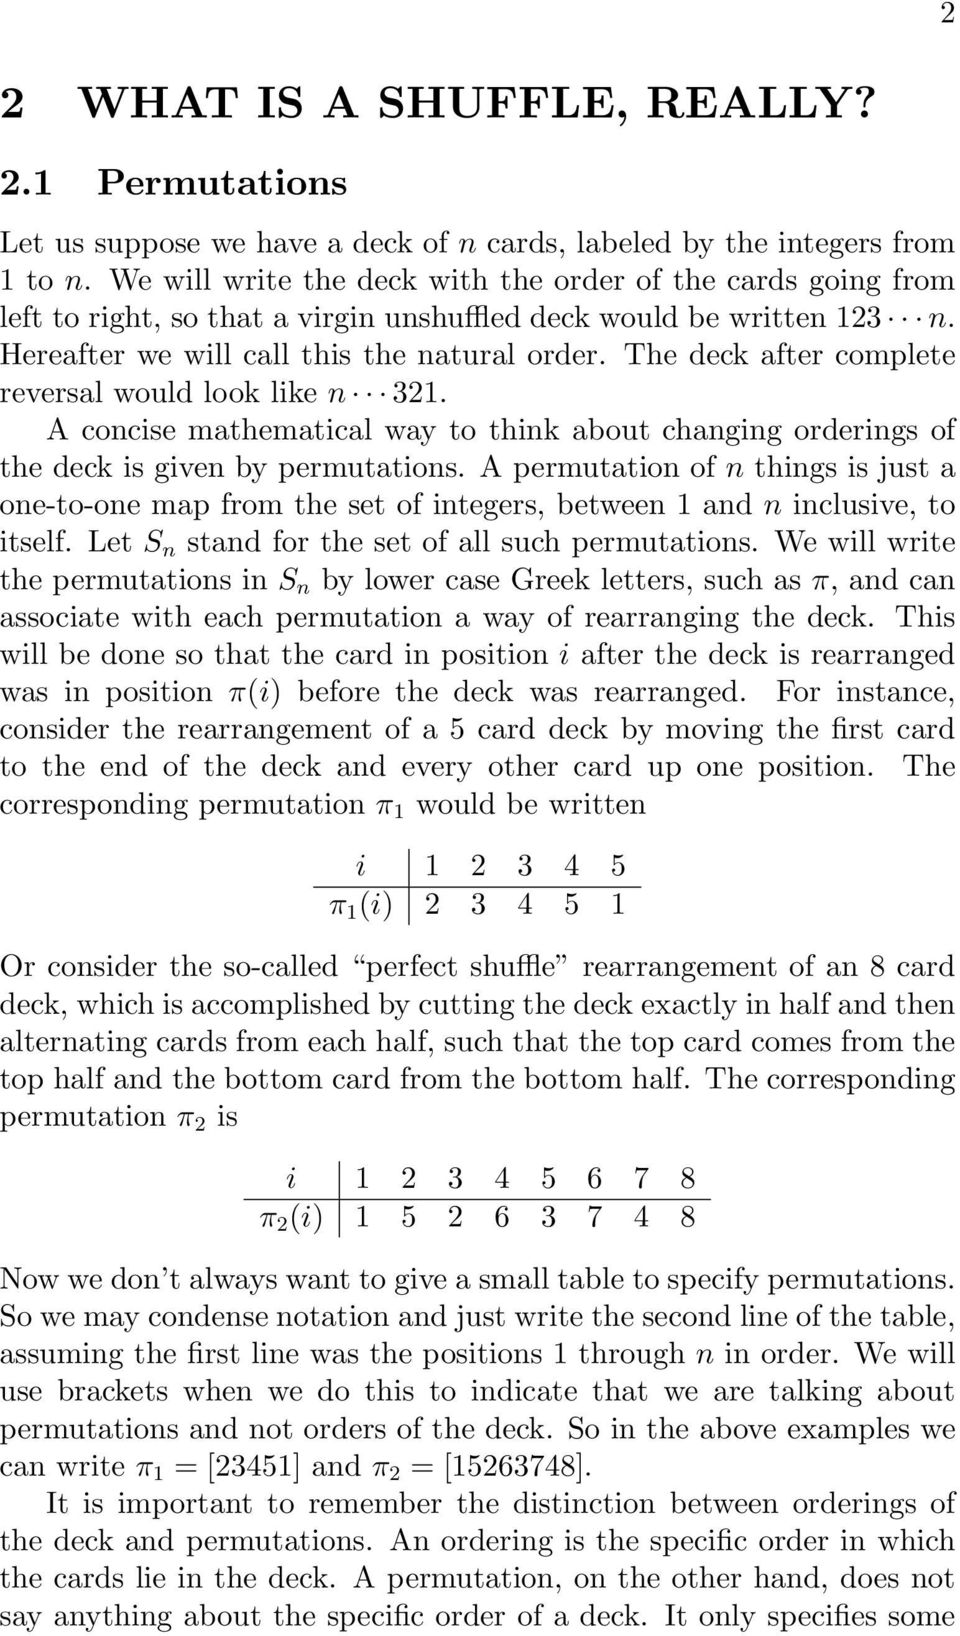 The deck after complete reversal would look like 321. A cocise mathematical way to thik about chagig orderigs of the deck is give by permutatios.